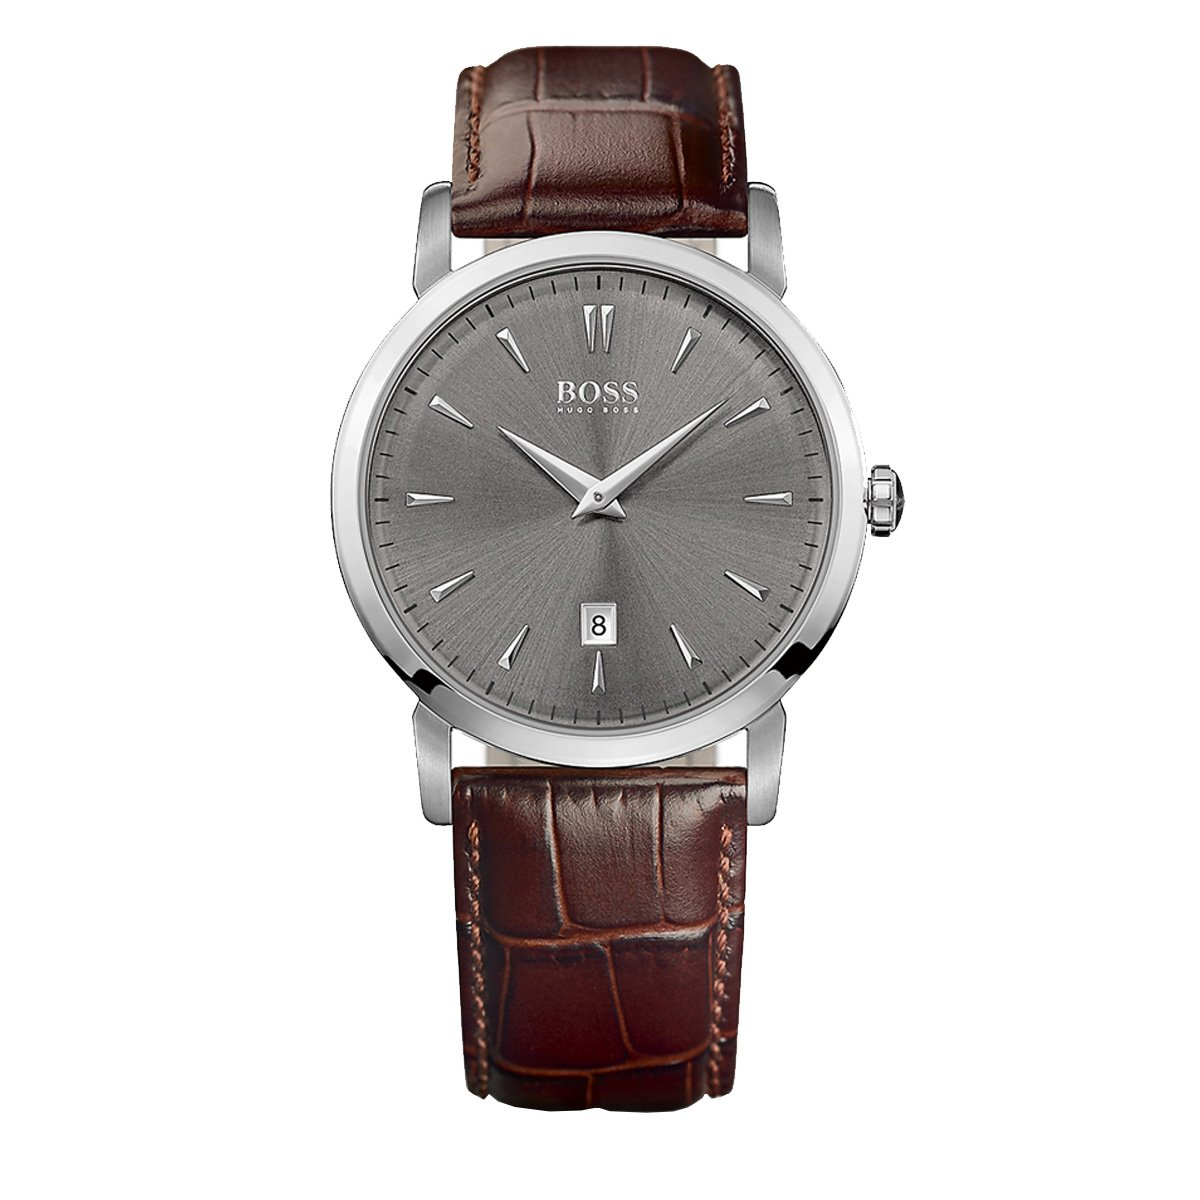 Hugo Boss Hombre Analog Dress Quartz Reloj 1513090: Amazon.es: Relojes